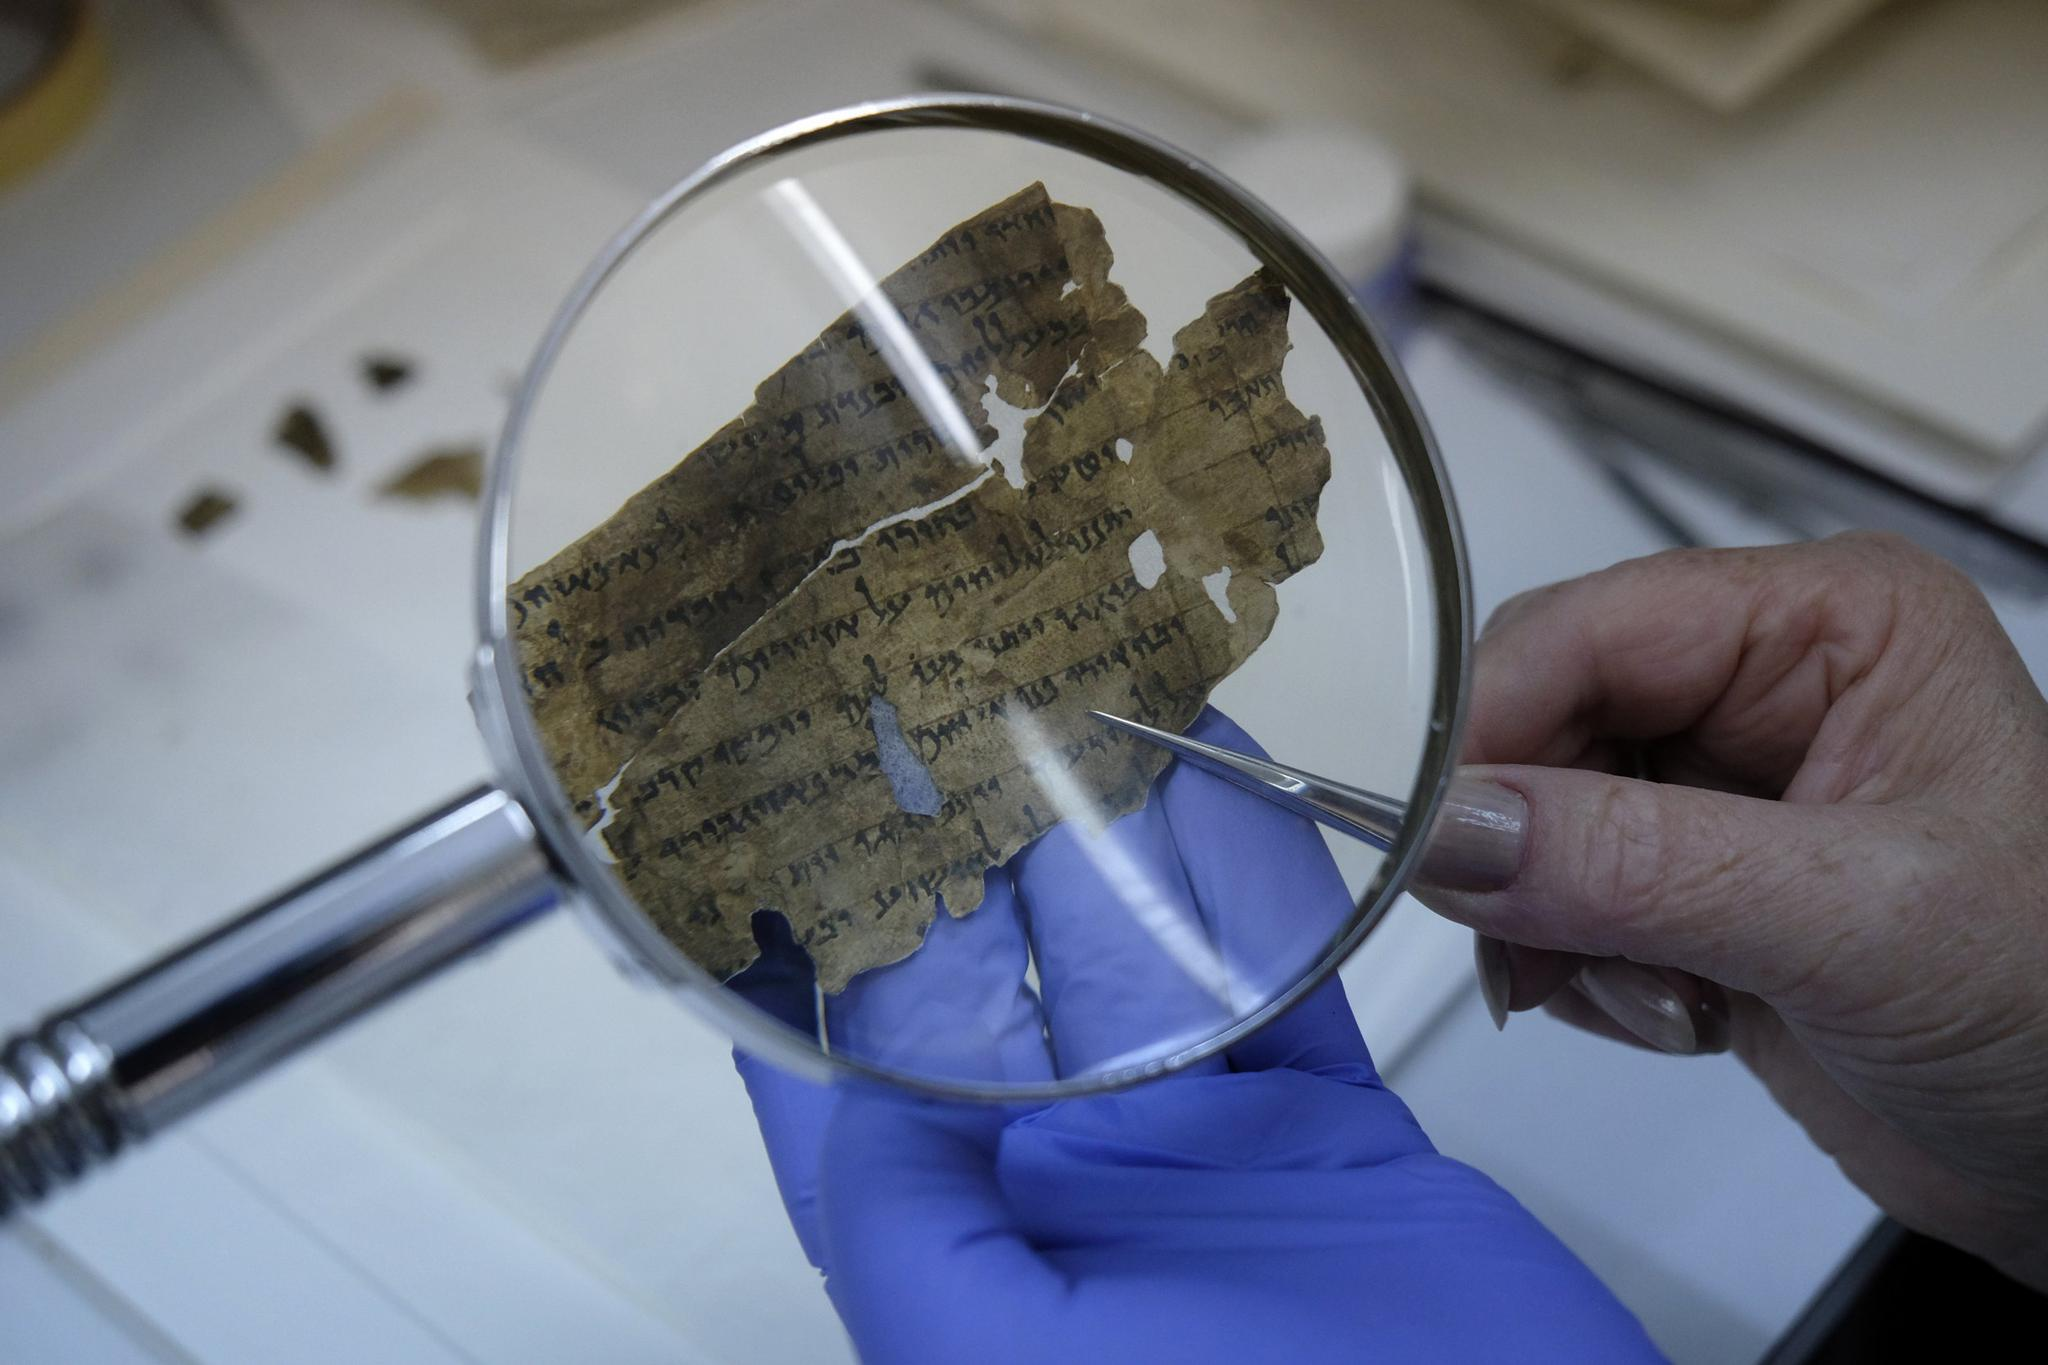 An employee of the Israel Antiquities Authority sews fragments of the Dead Sea scrolls in a preservation laboratory at the Israel Museum in Jerusalem on July 20, 2015.